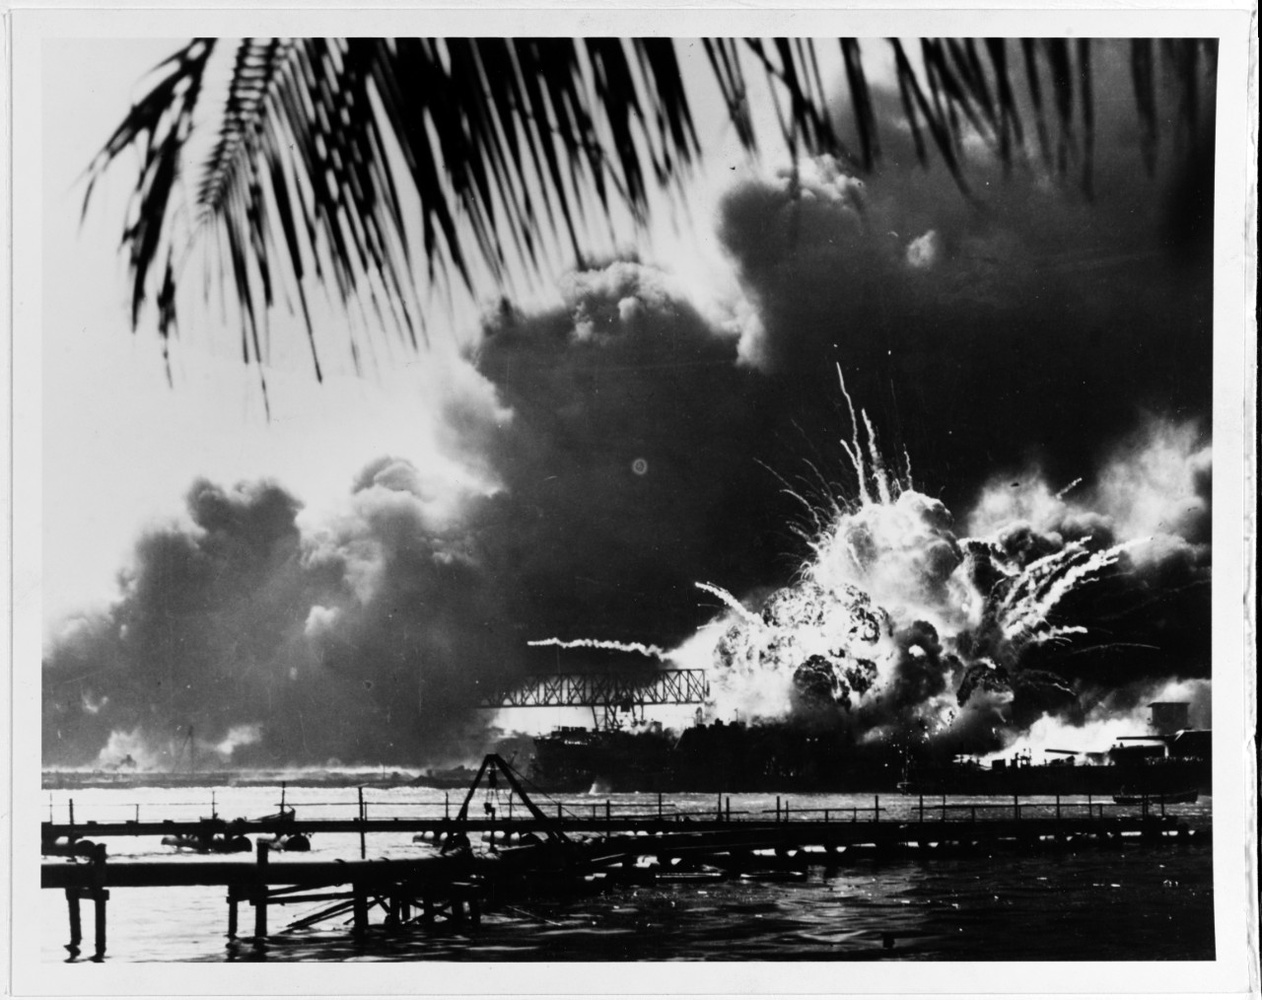 The forward magazine of USS Shaw (DD-373) explodes during the second Japanese attack wave. At right is the bow of USS Nevada (BB-36), with a tug alongside fighting fires. Photographed from Ford Island, with a dredging line in the foreground. U.S. Naval Hi